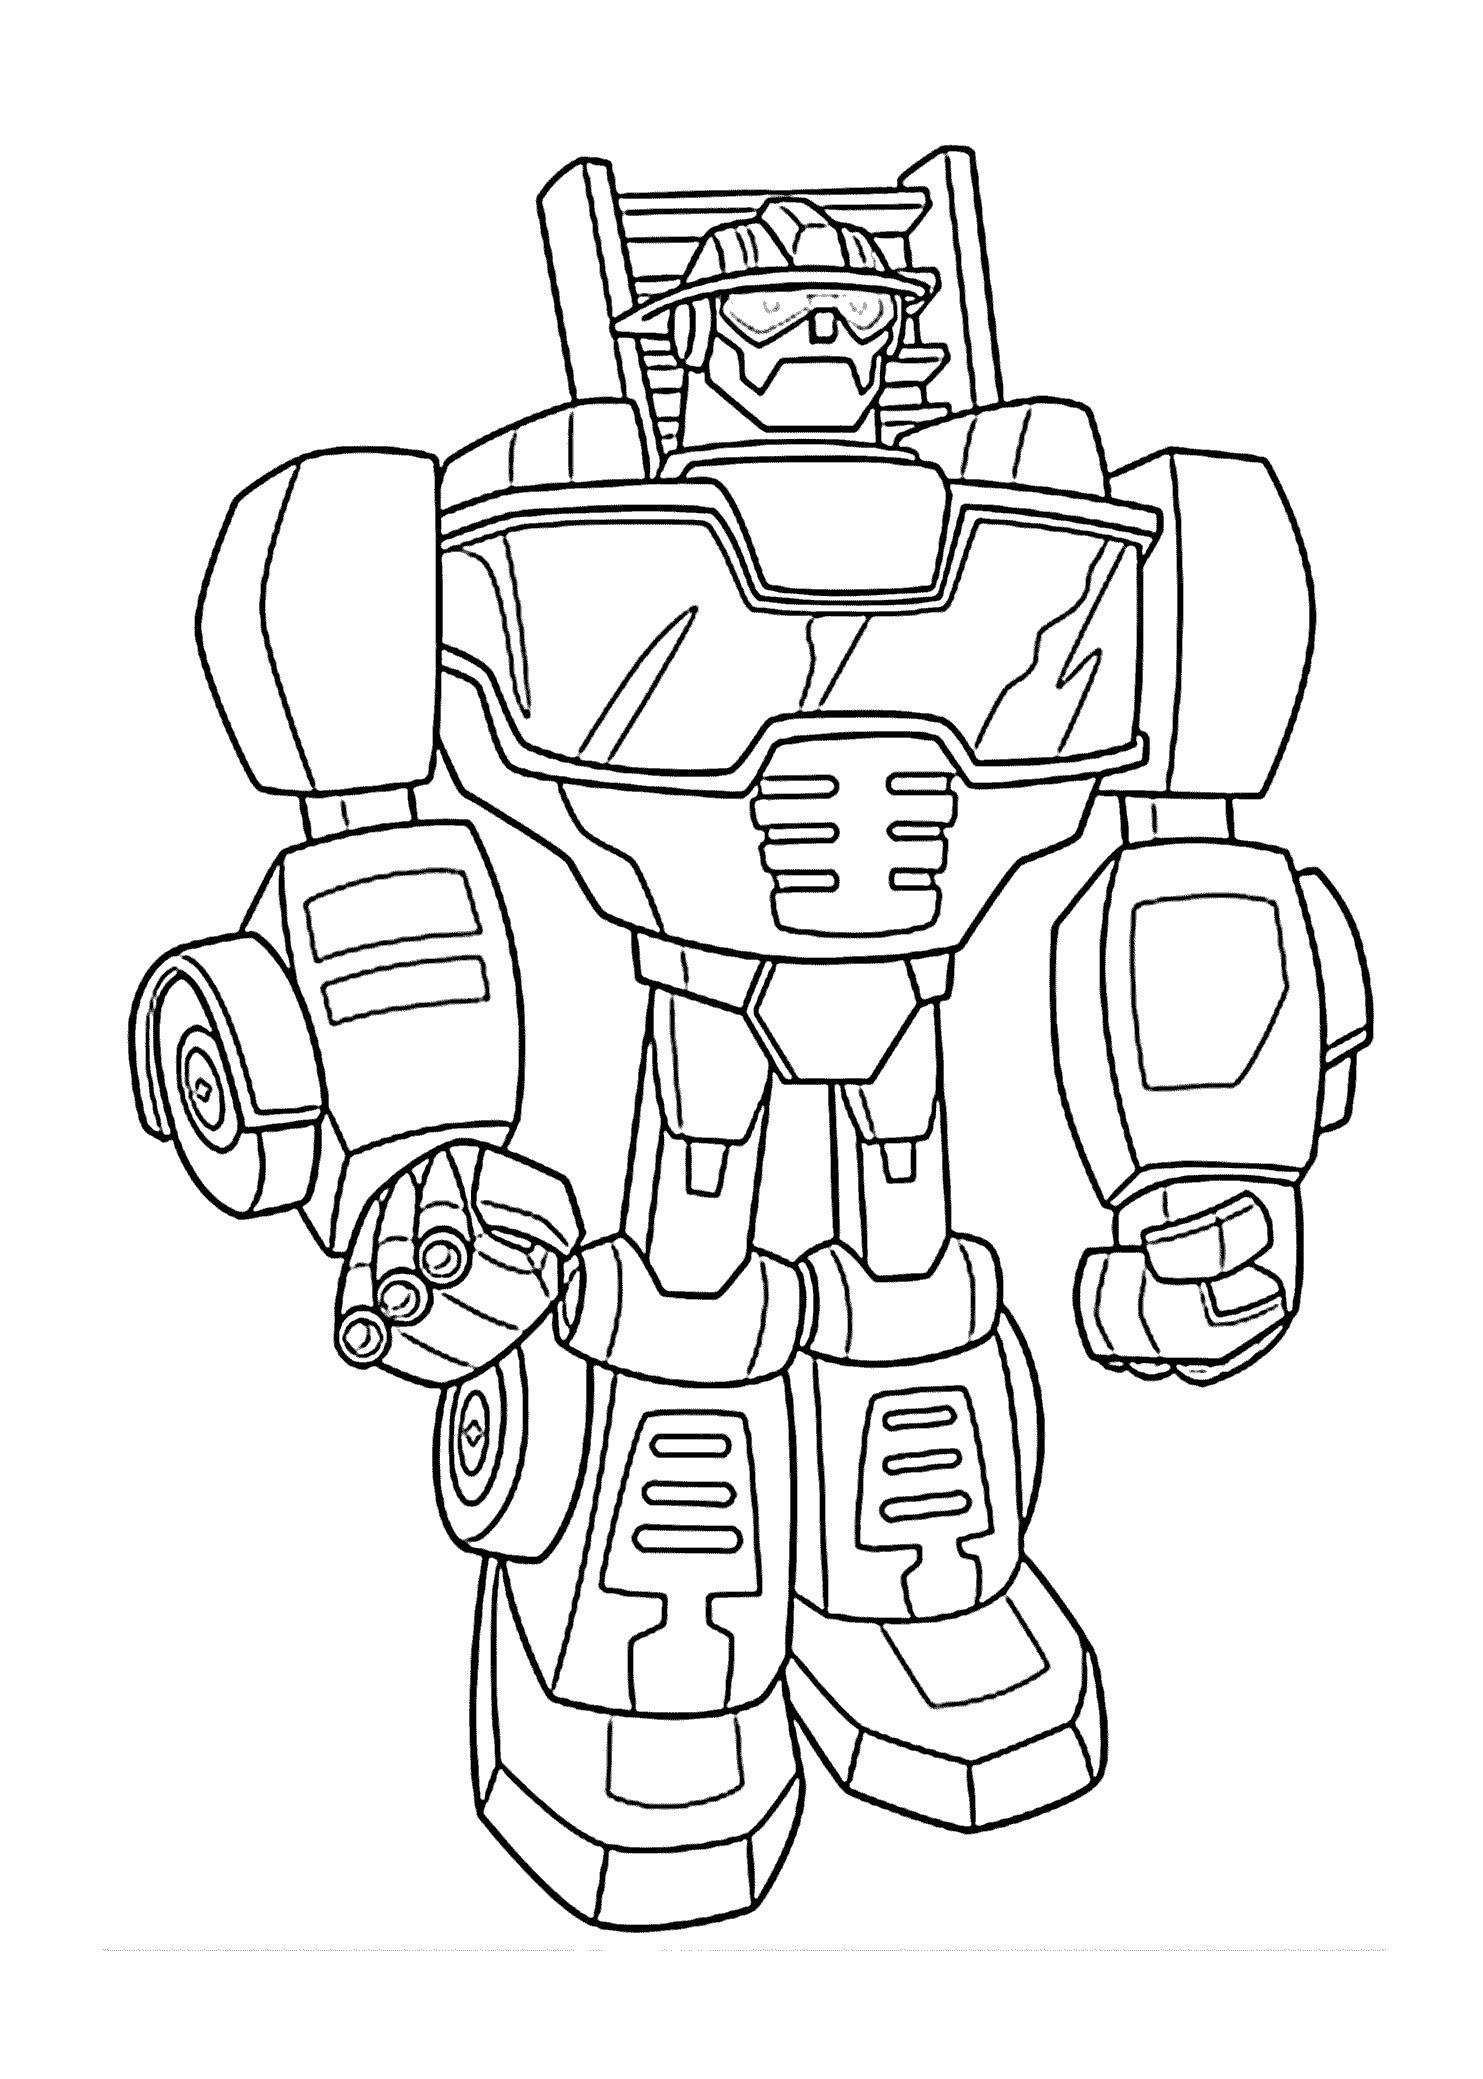 22 Brilliant Image Of Rescue Bots Coloring Pages Desene